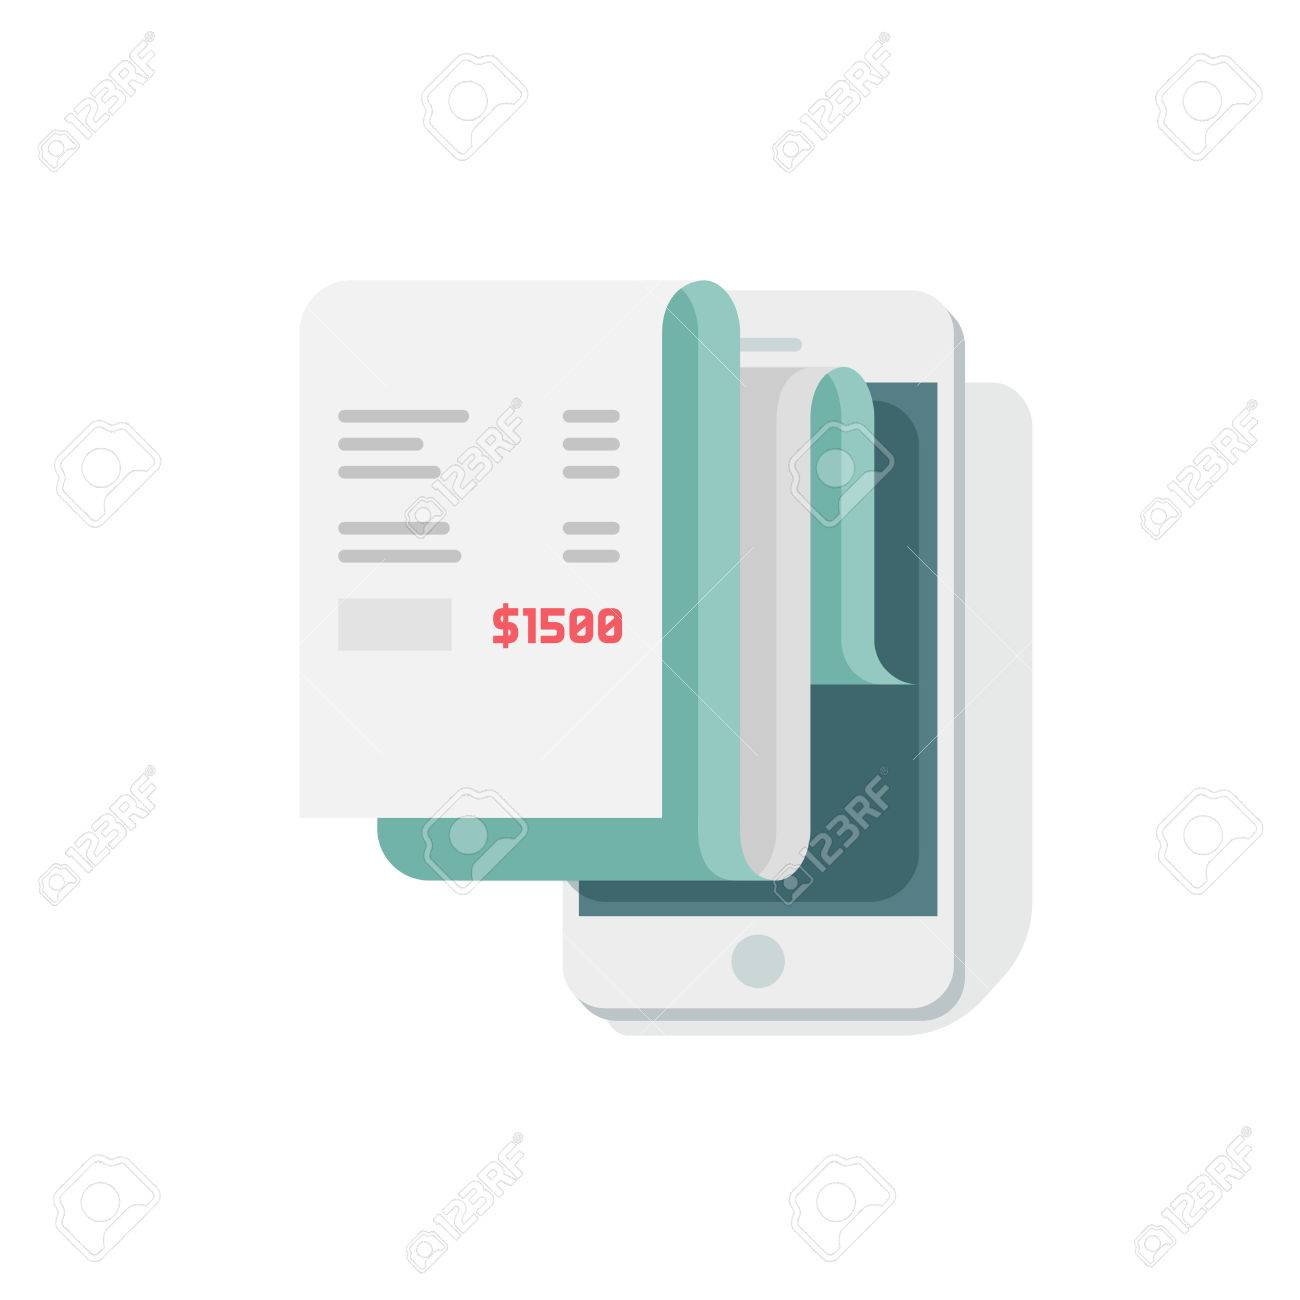 receipt in smartphone vector illustration flat style mobile